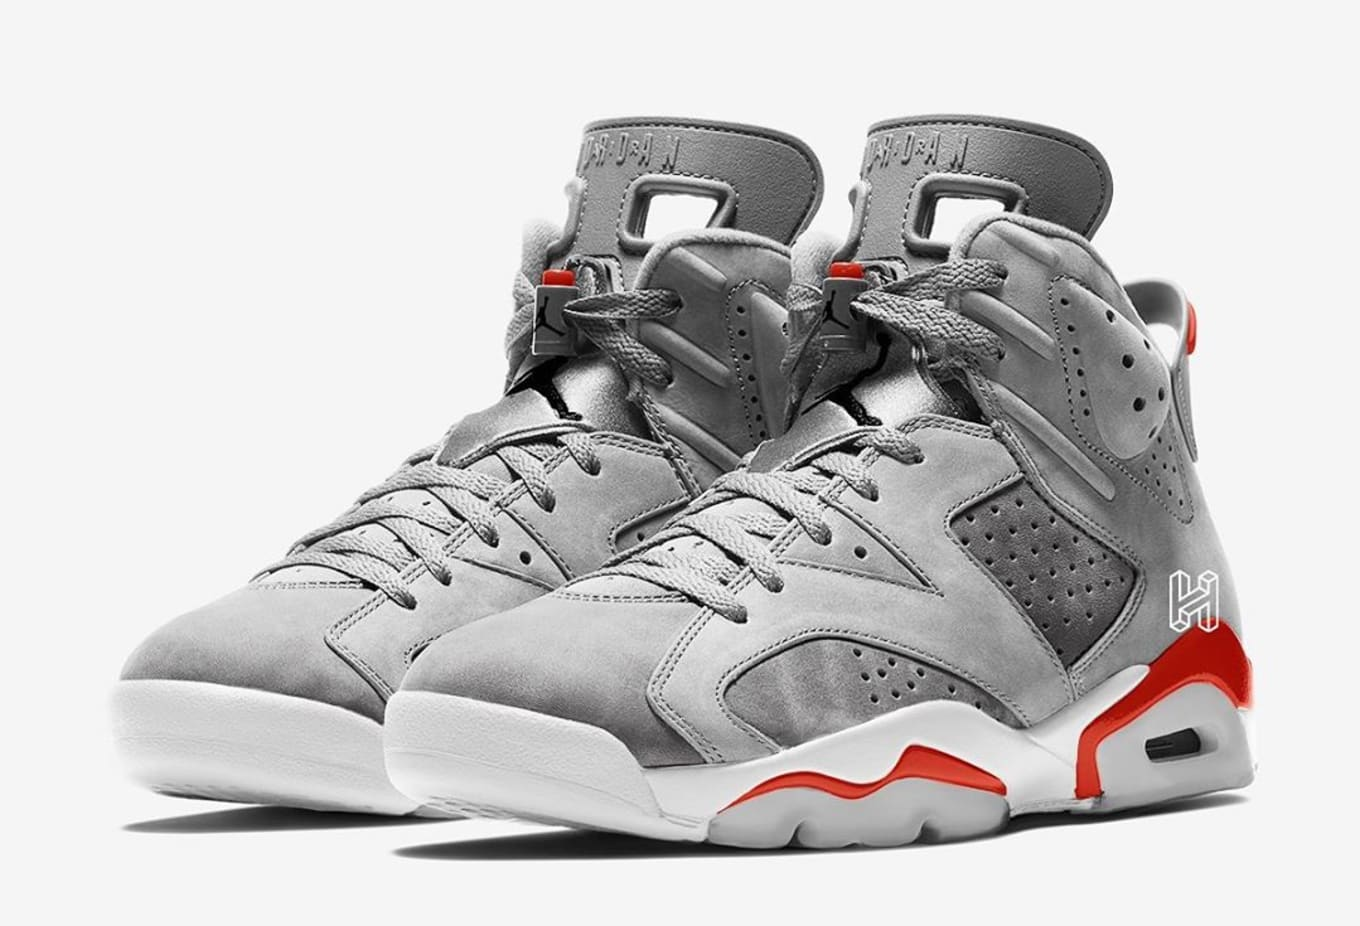 New Jordans 2020.Air Jordan 6 Retro Neutral Grey White True Red Black